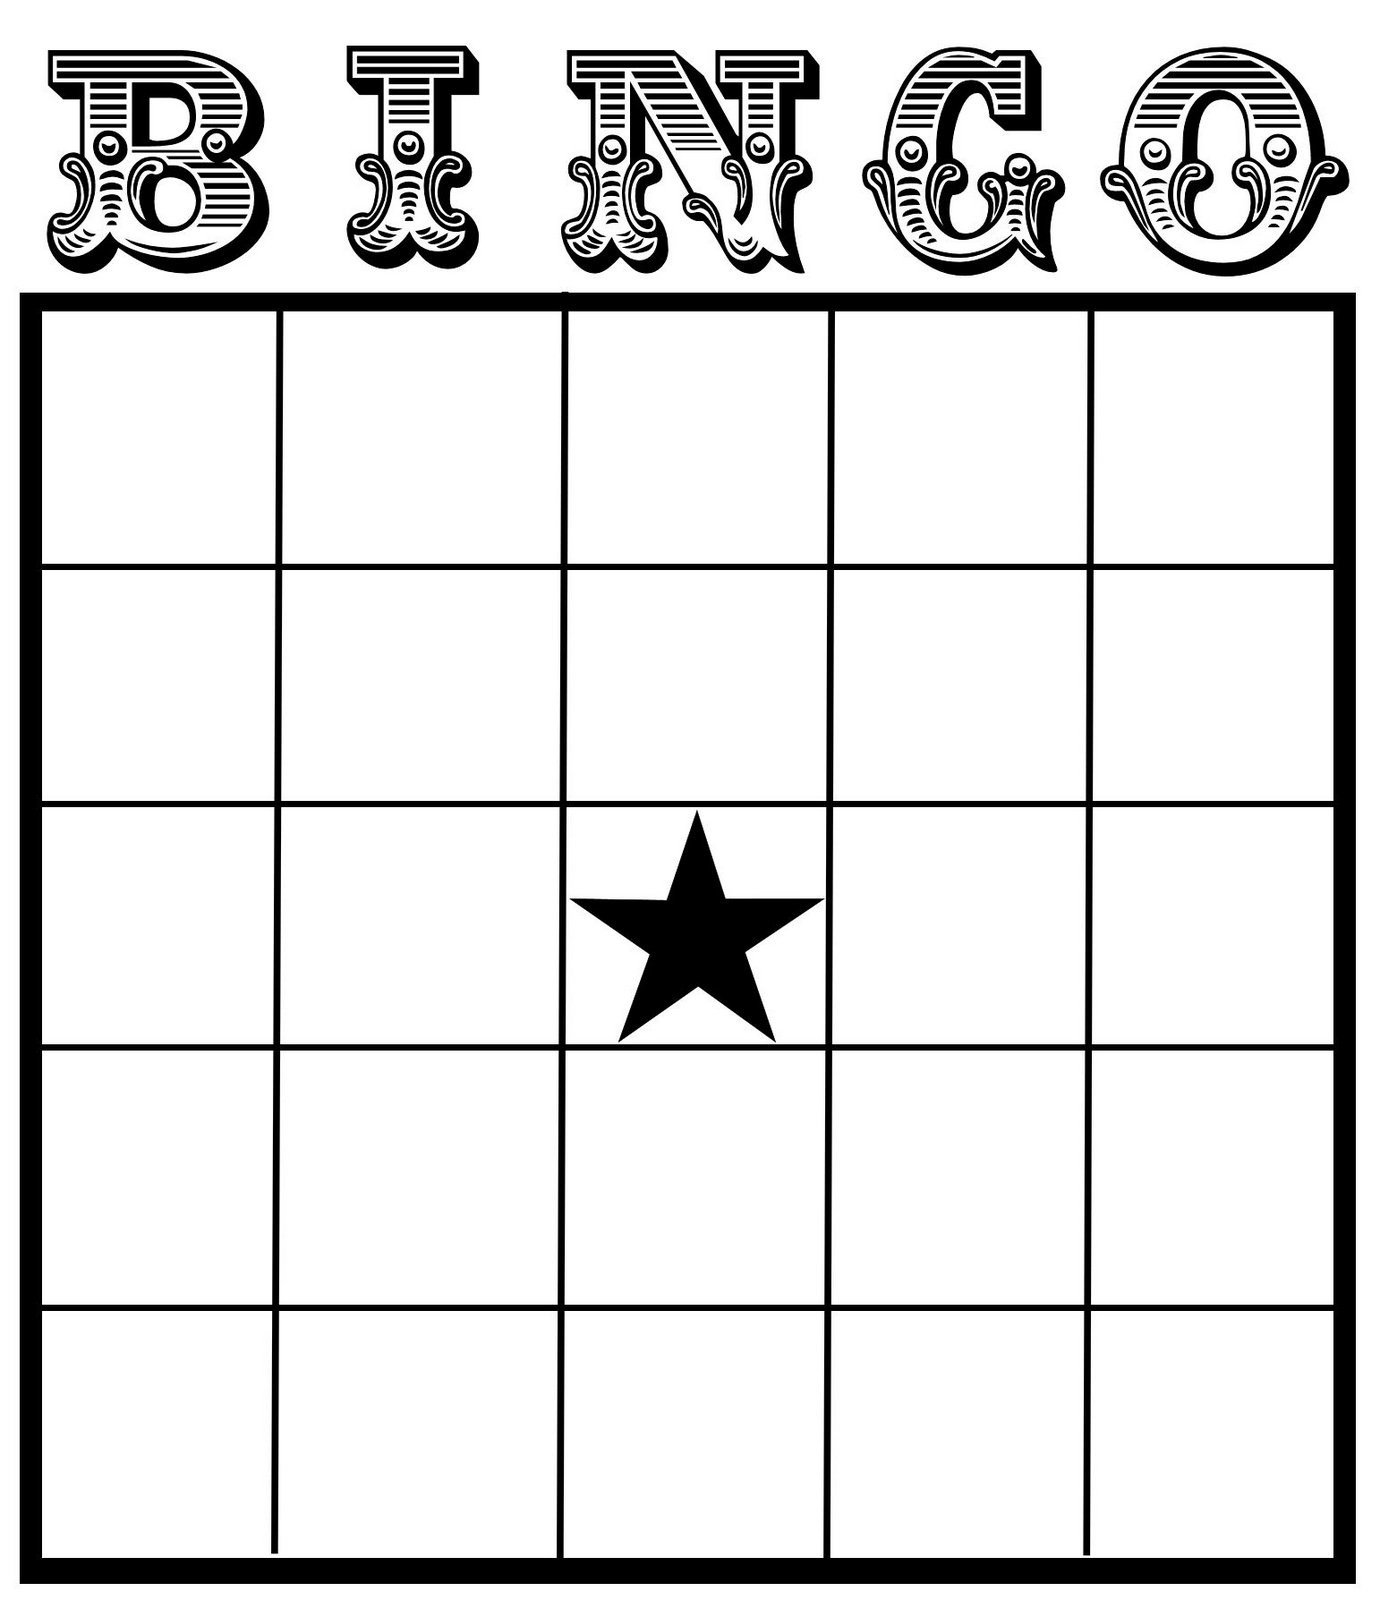 Free Bingo Card Template Christine Zani Bingo Card Printables to